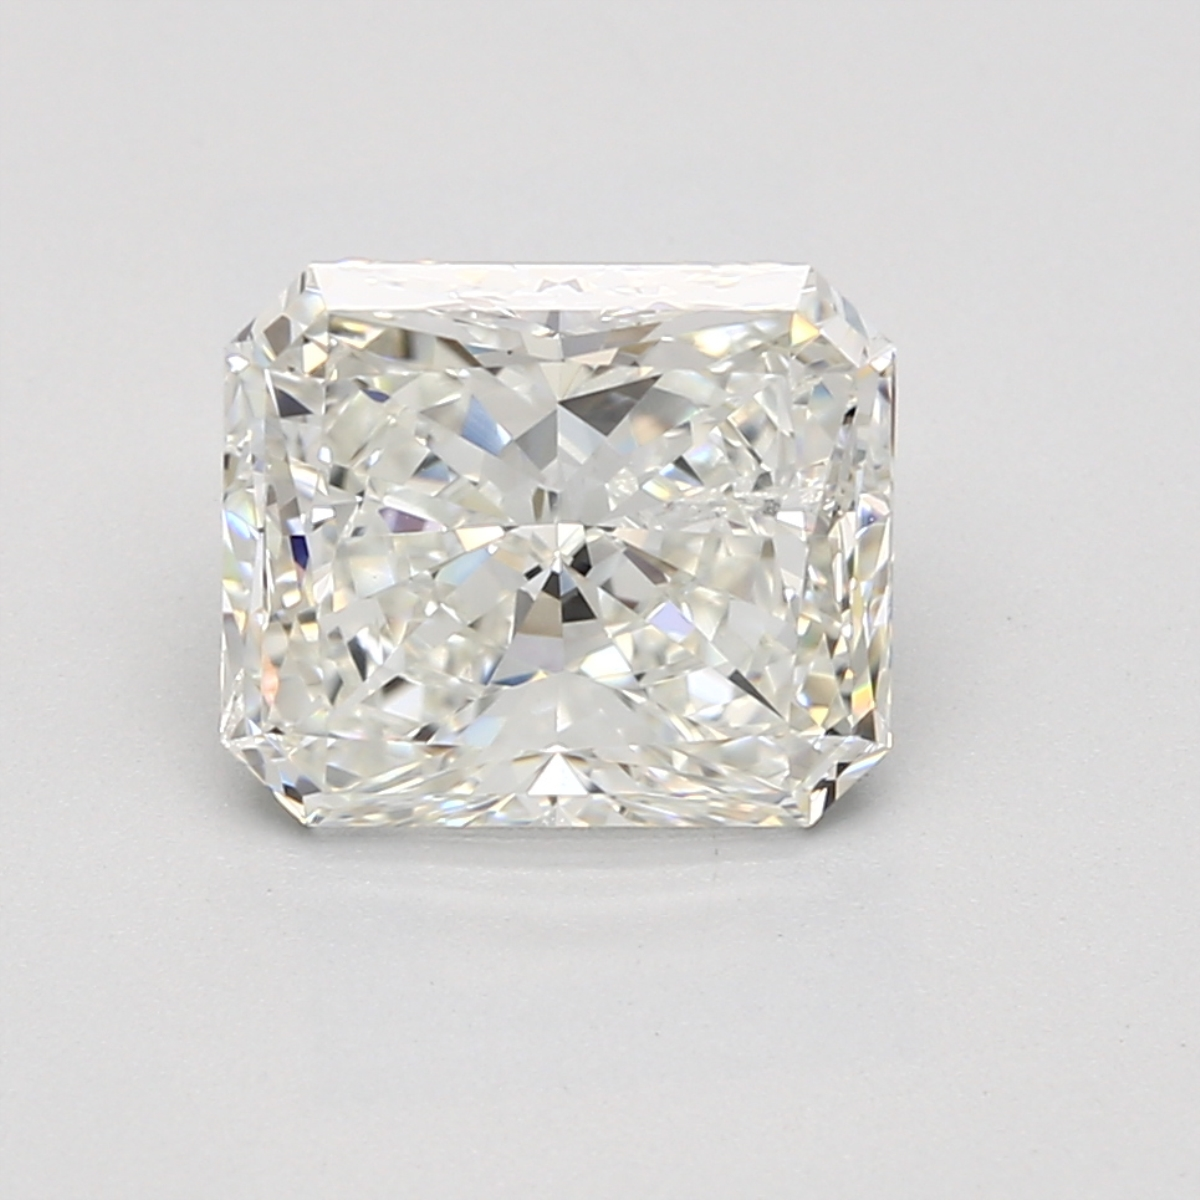 3.23 carat Radiant Diamond, Very Good cut, graded by the GIA laboratories.